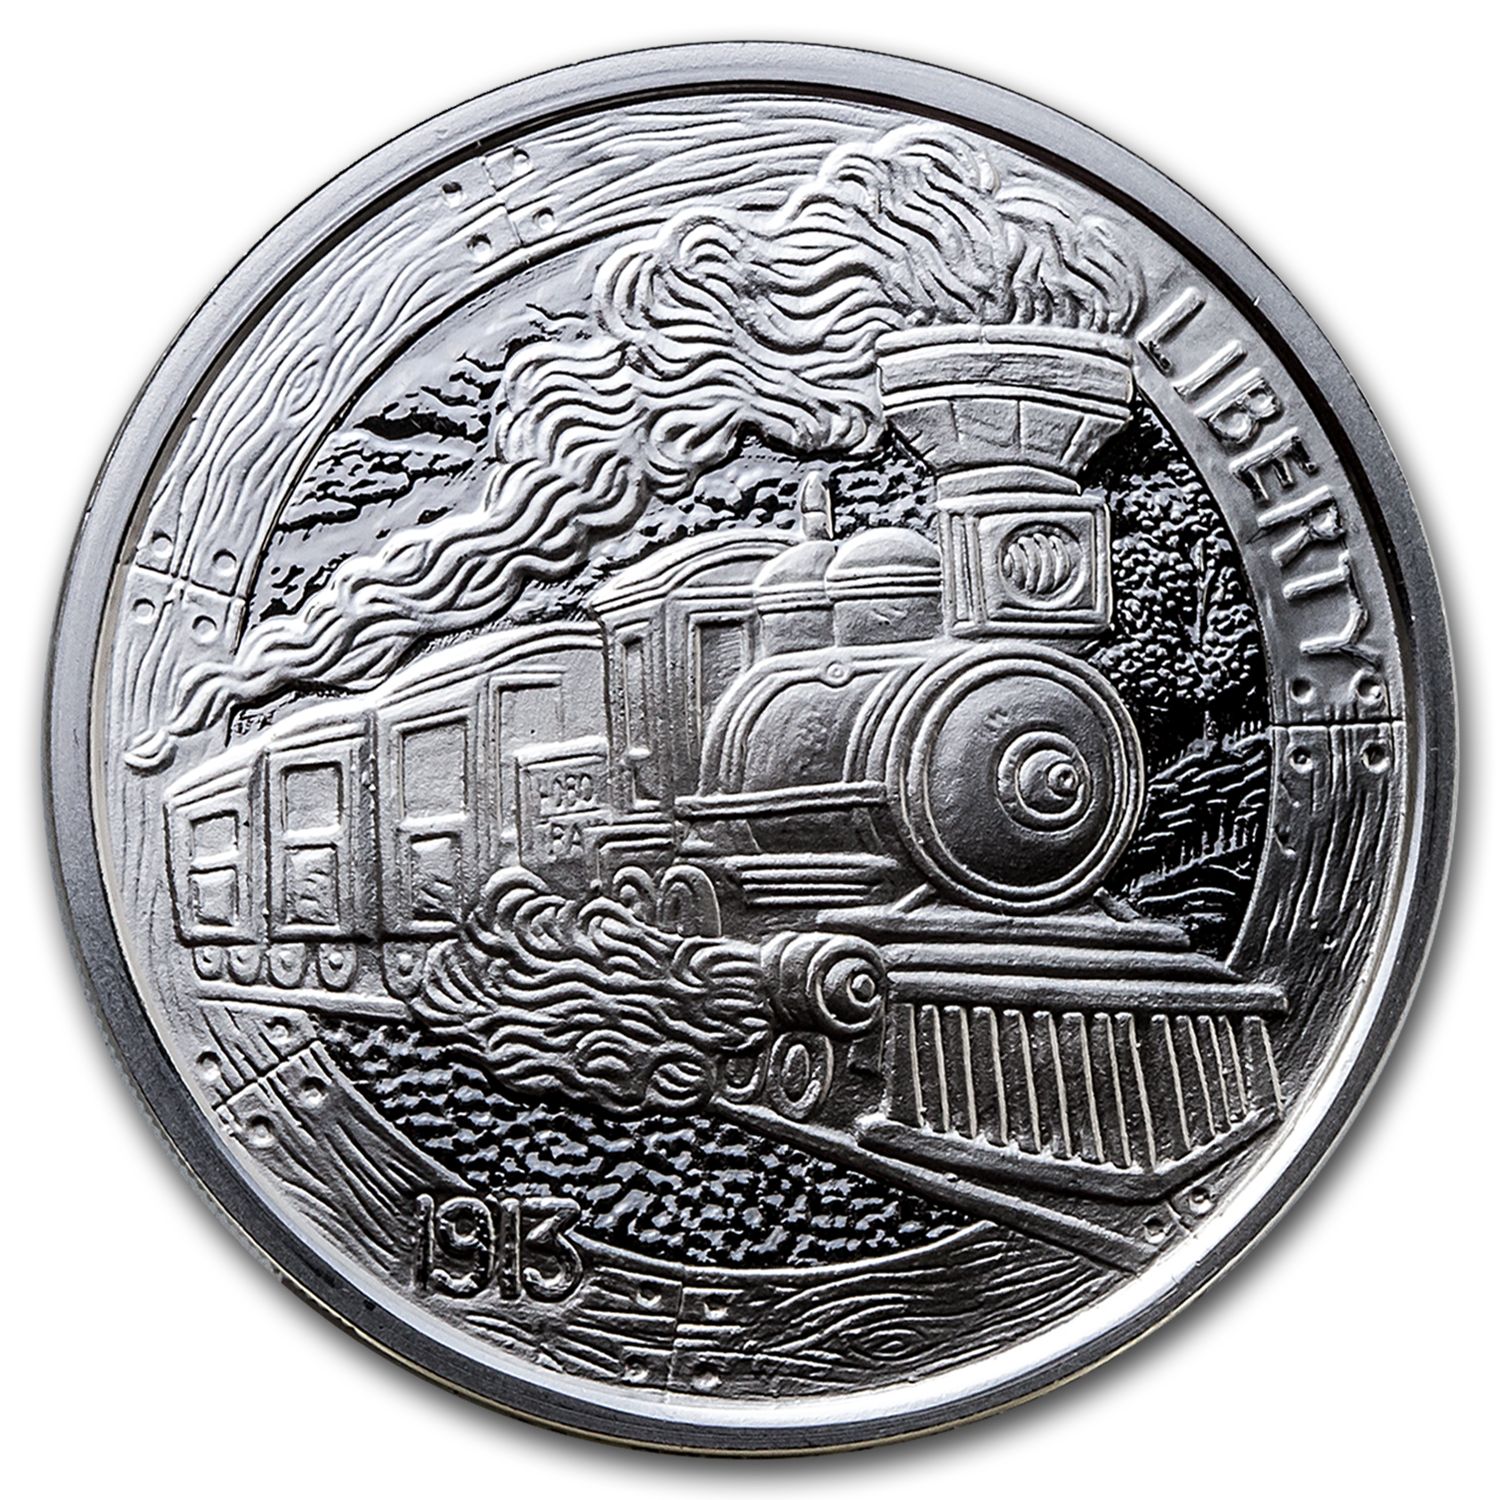 1 Oz Silver Round Hobo Nickel Replica The Train 1 Oz